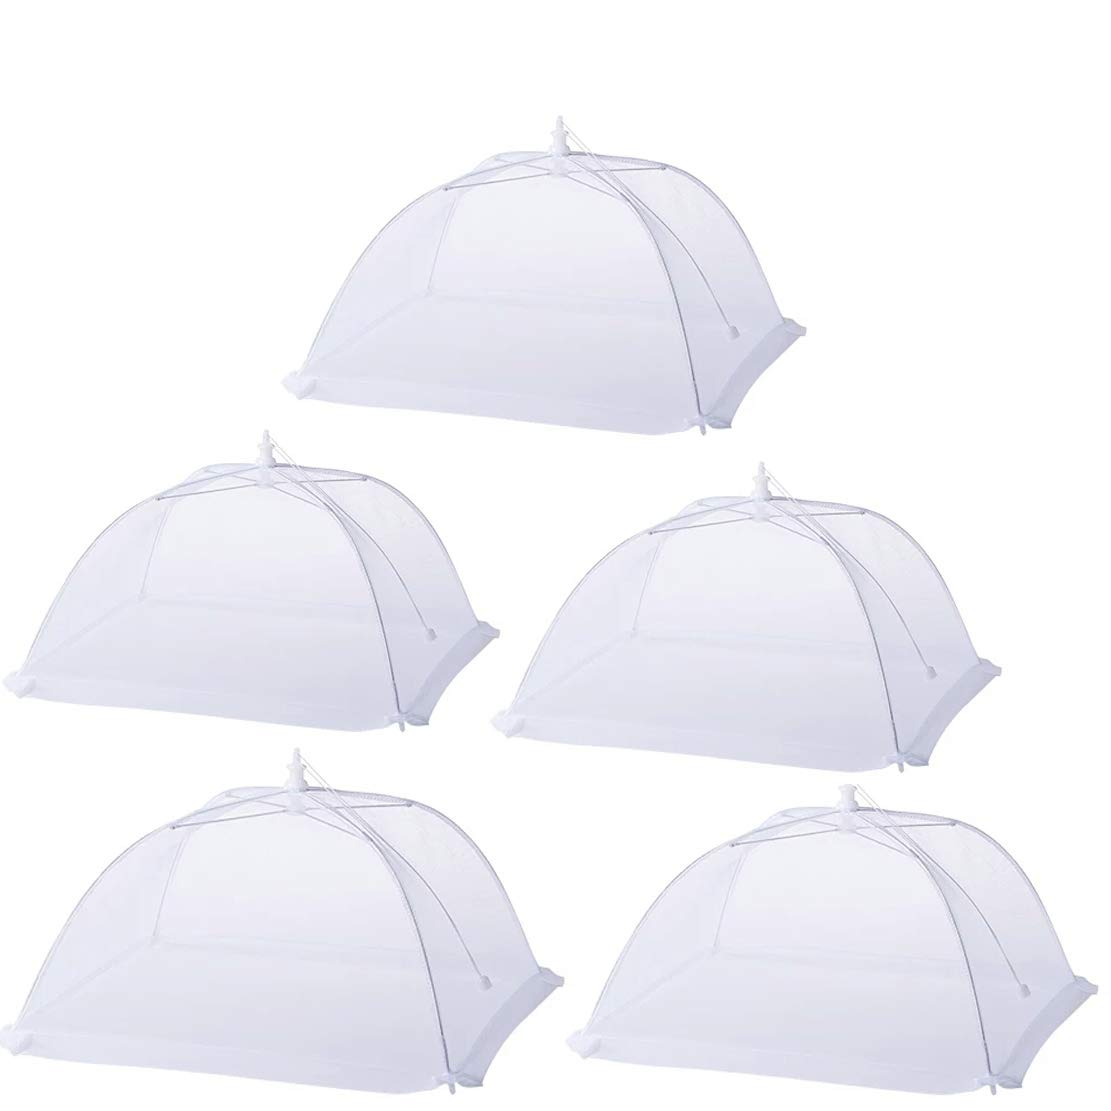 5 Pack Collapsible Fly Pop Up Net Food Cover Mesh Pop Up Mesh Screen Food Covers Tents Net Umbrella Storage for Outdoor (White) Florvine seller